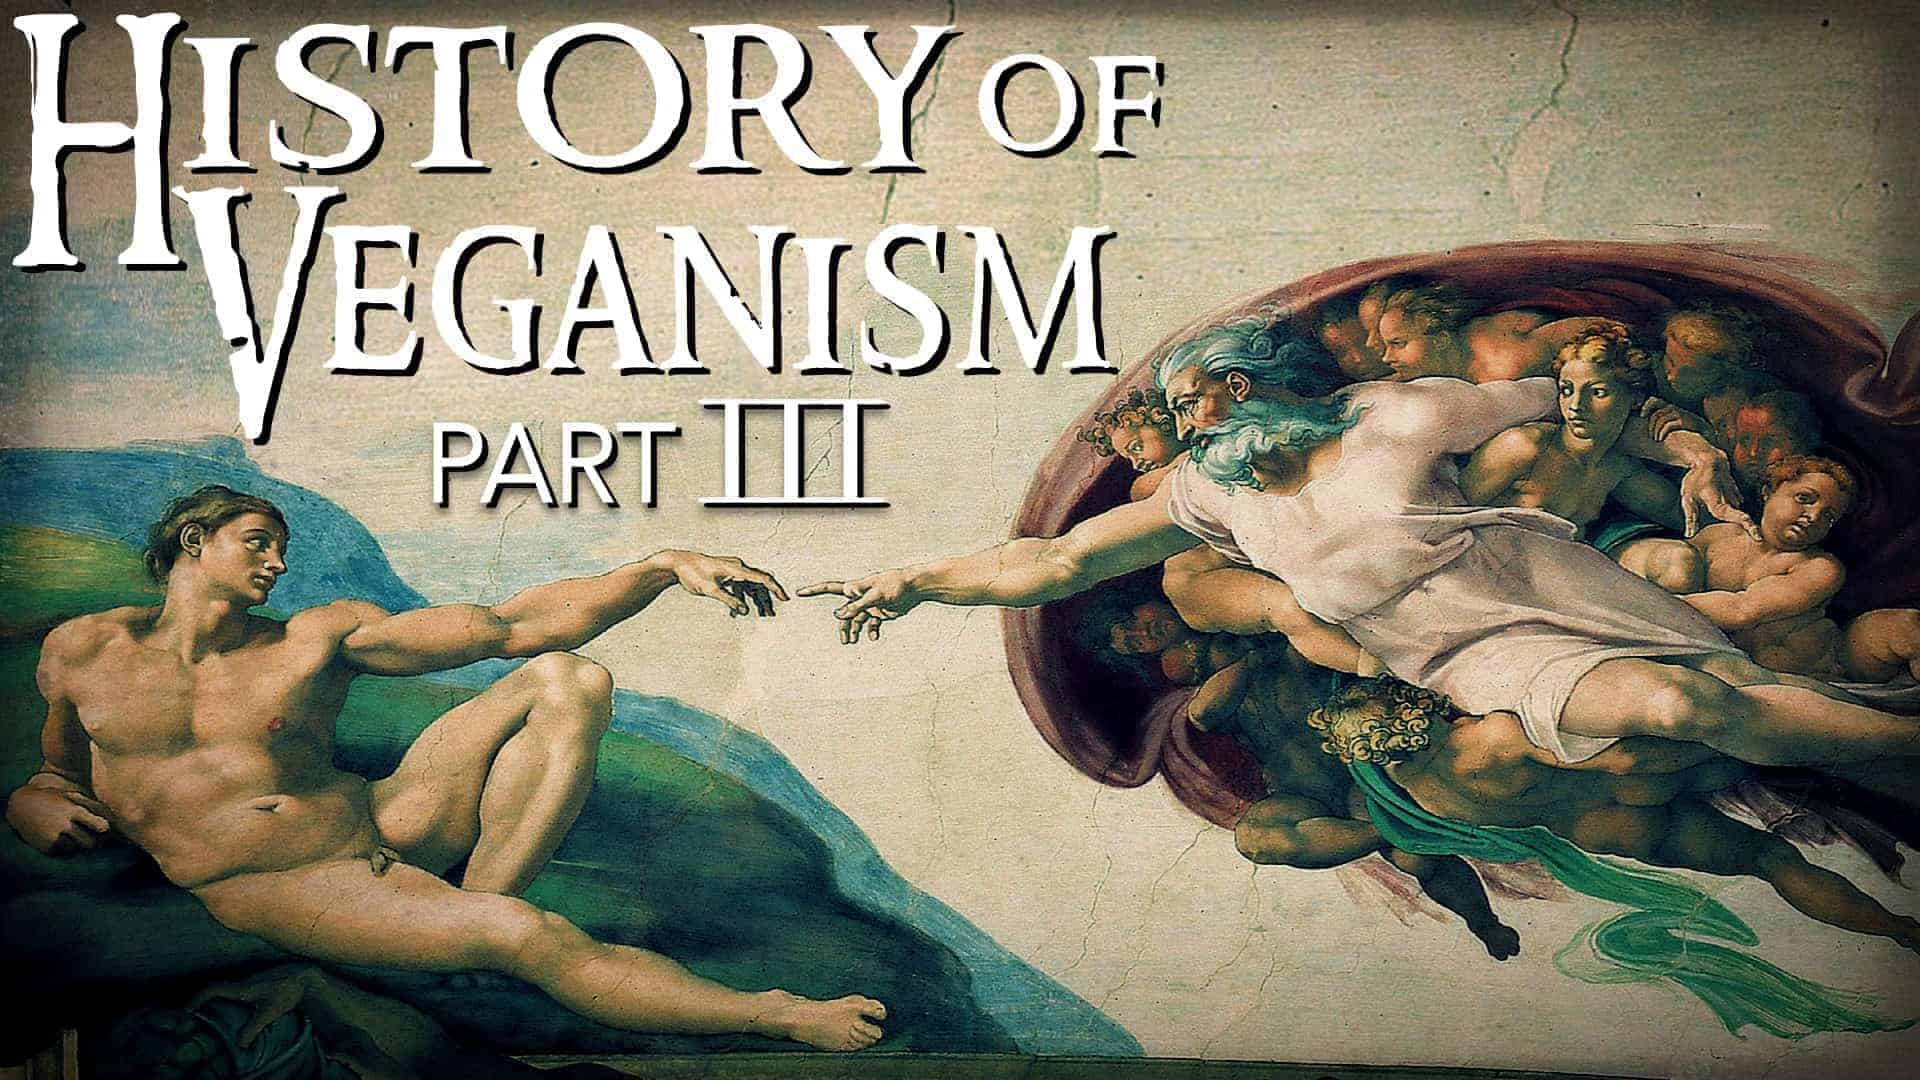 """Overlaid over an image of """"God Touching Adam"""" from the Sistine Chapel ceiling are the words """"History of veganism part 3""""."""